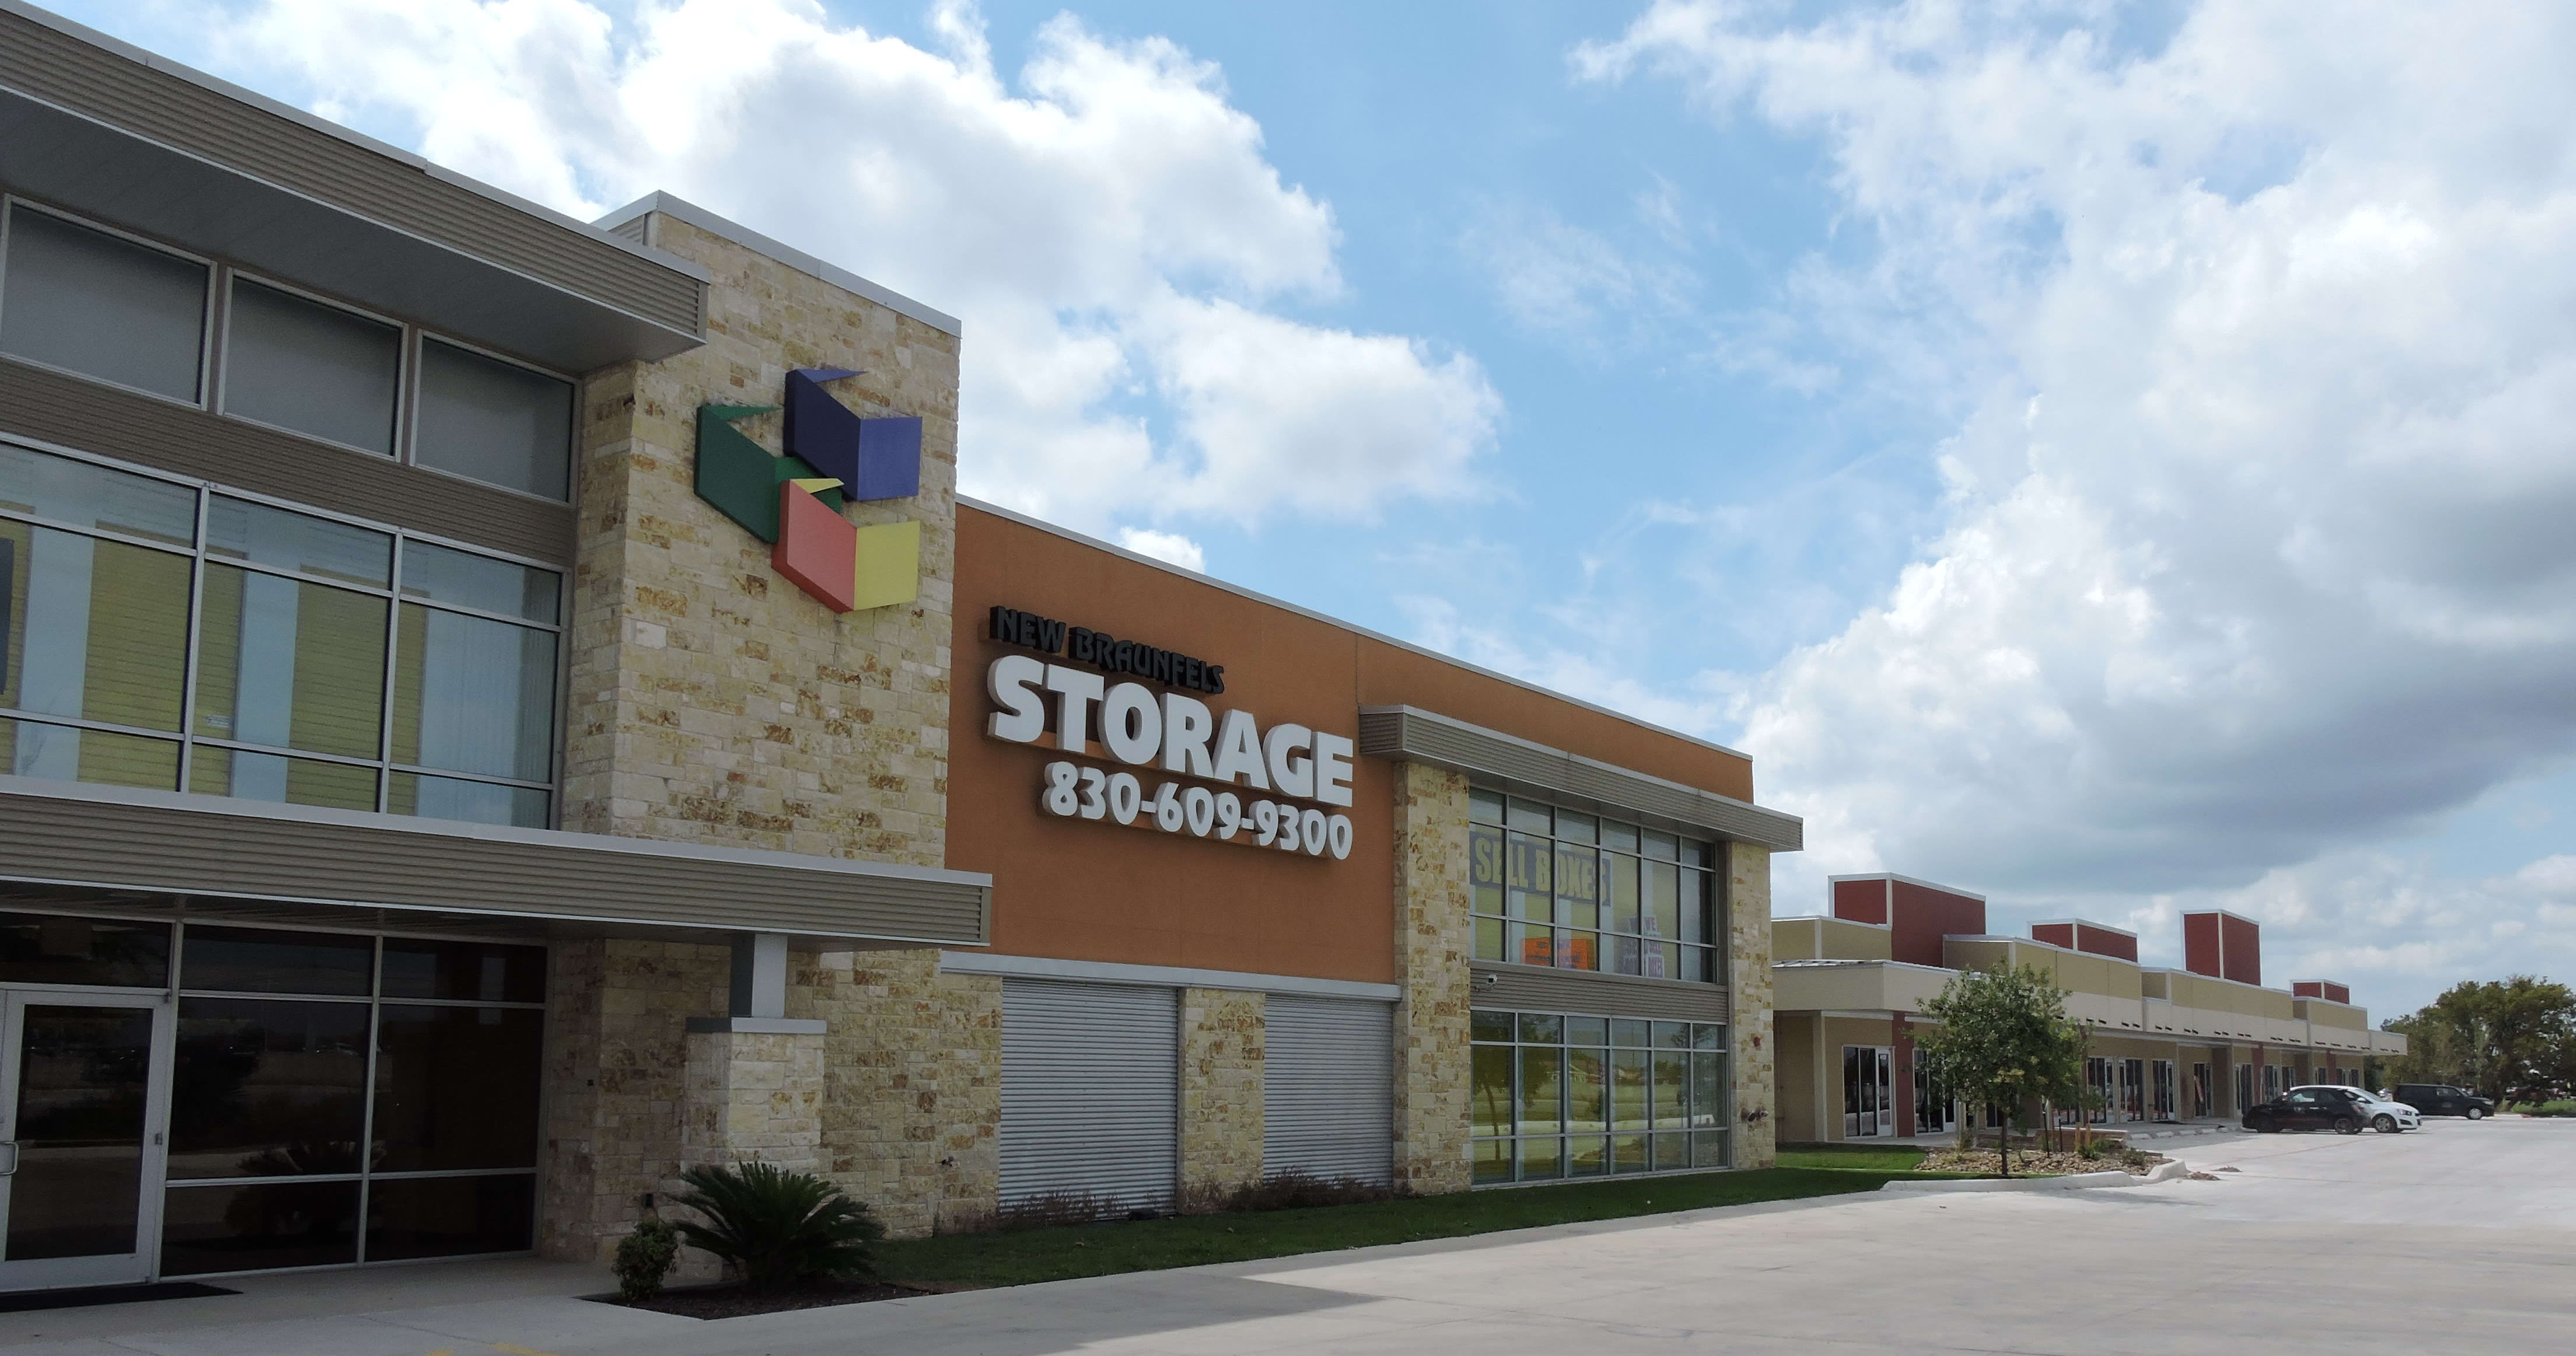 About self storage in New Braunfels, TX